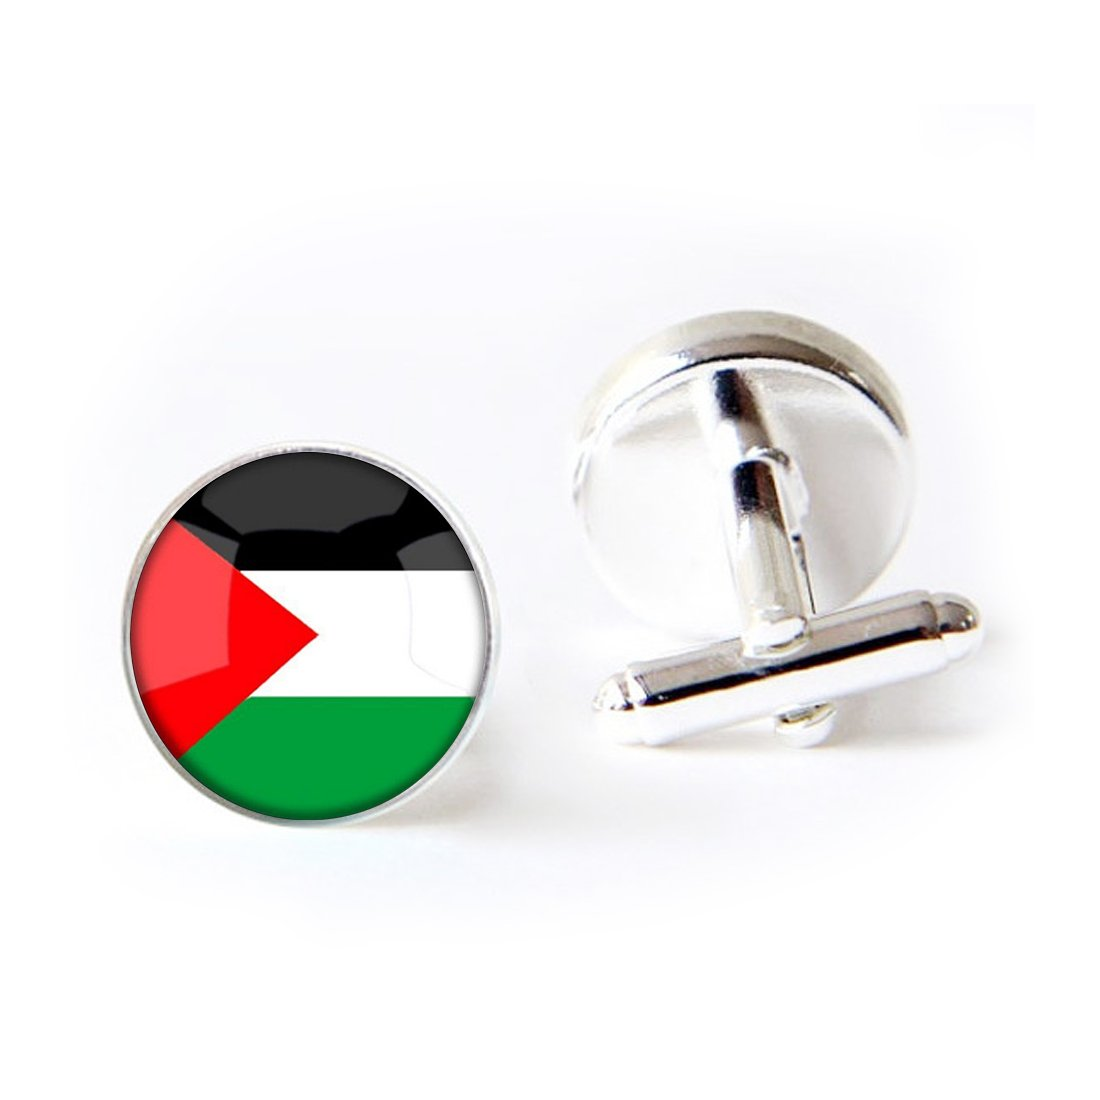 Unique Round Cufflinks Set The Hashemite Kingdom of Jordan National Flag Glass Cuff Dress Shirt Links Wedding Business Anniversary Gift for Him